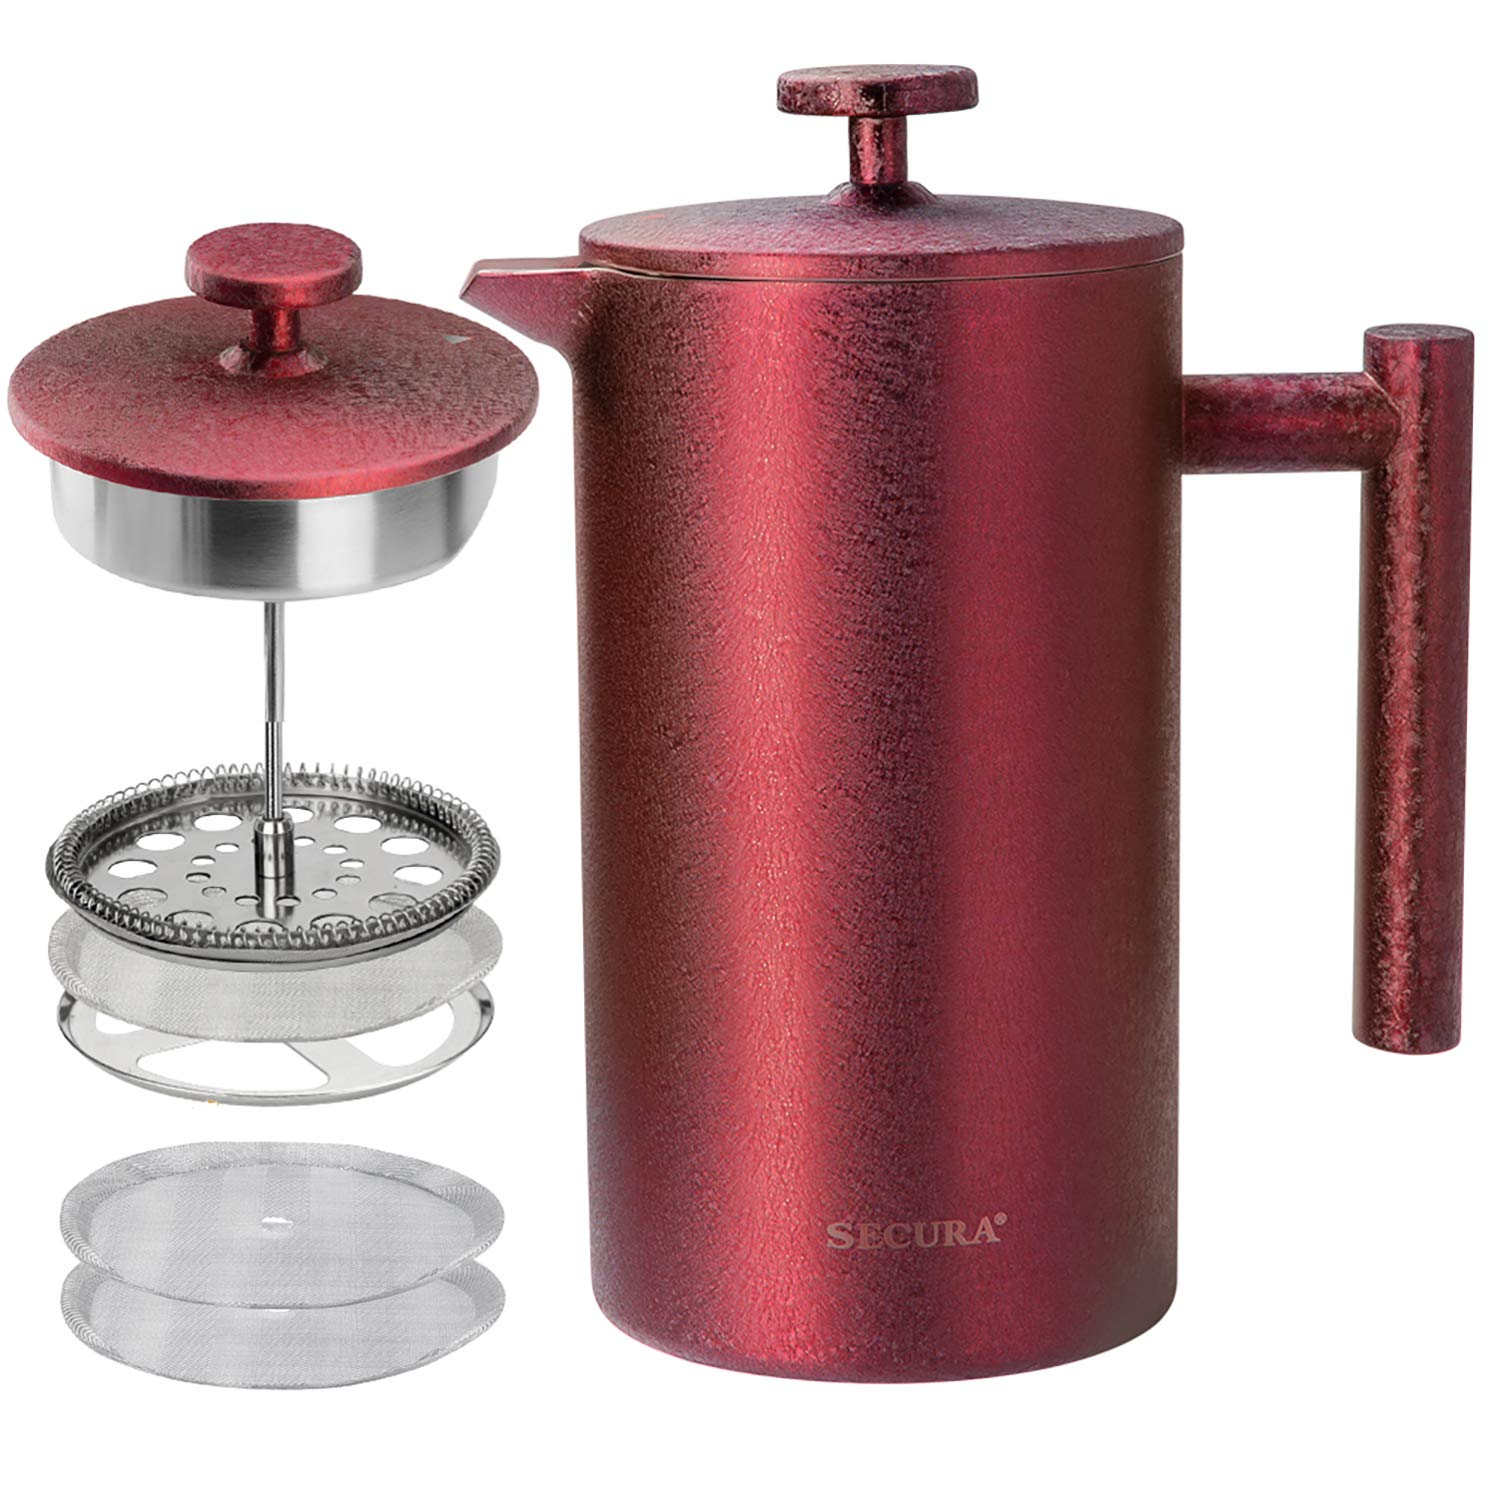 Secura French Press Coffee Maker, 304 Grade